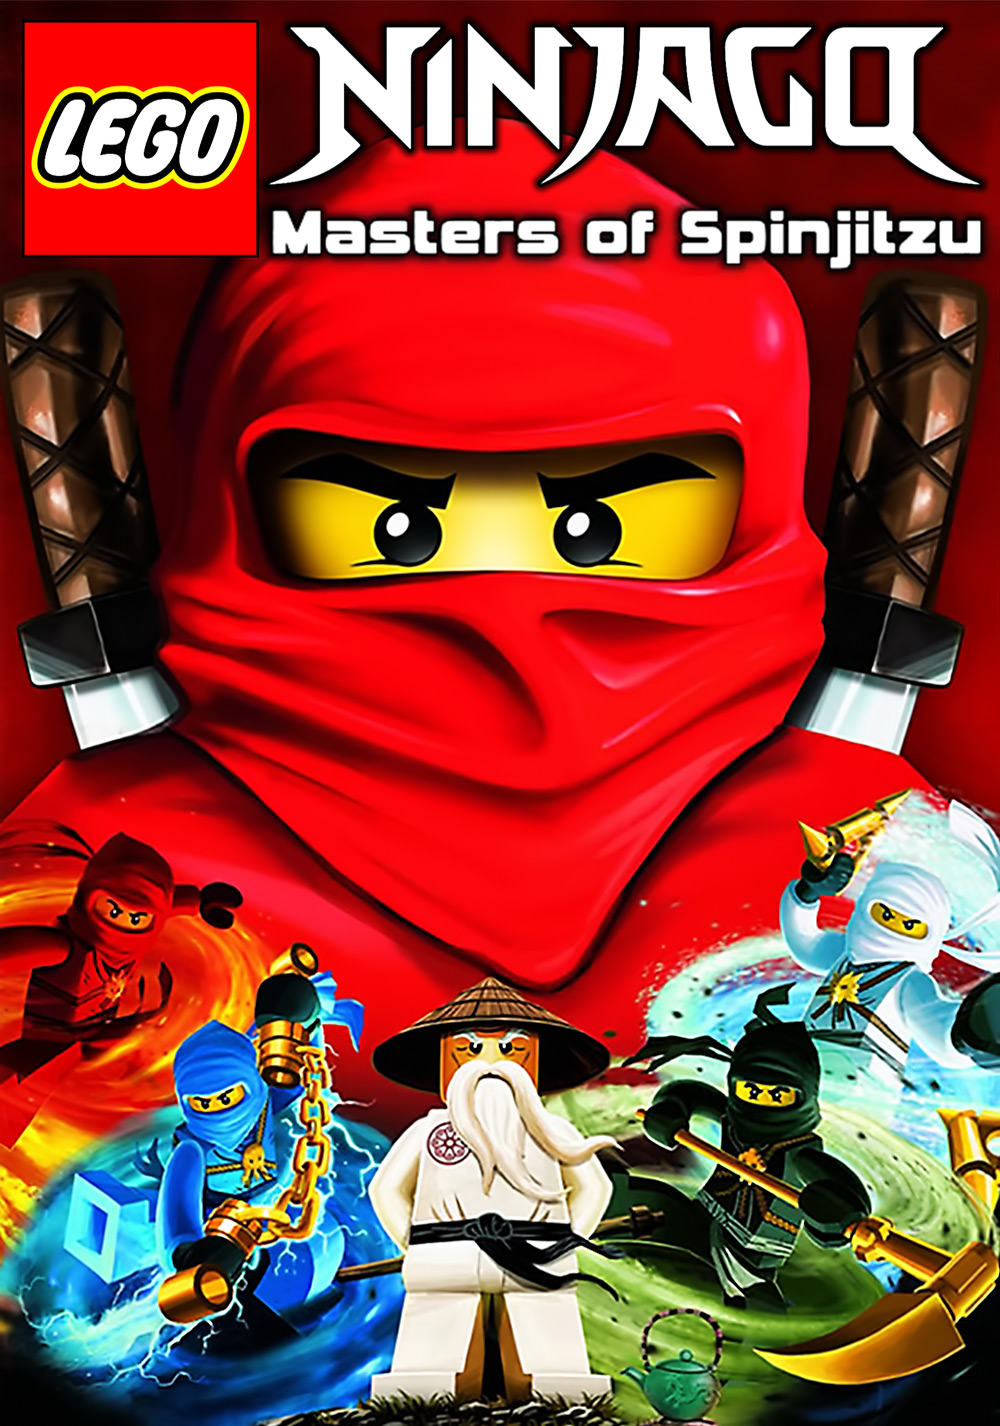 Super power of ninjago for android apk download.